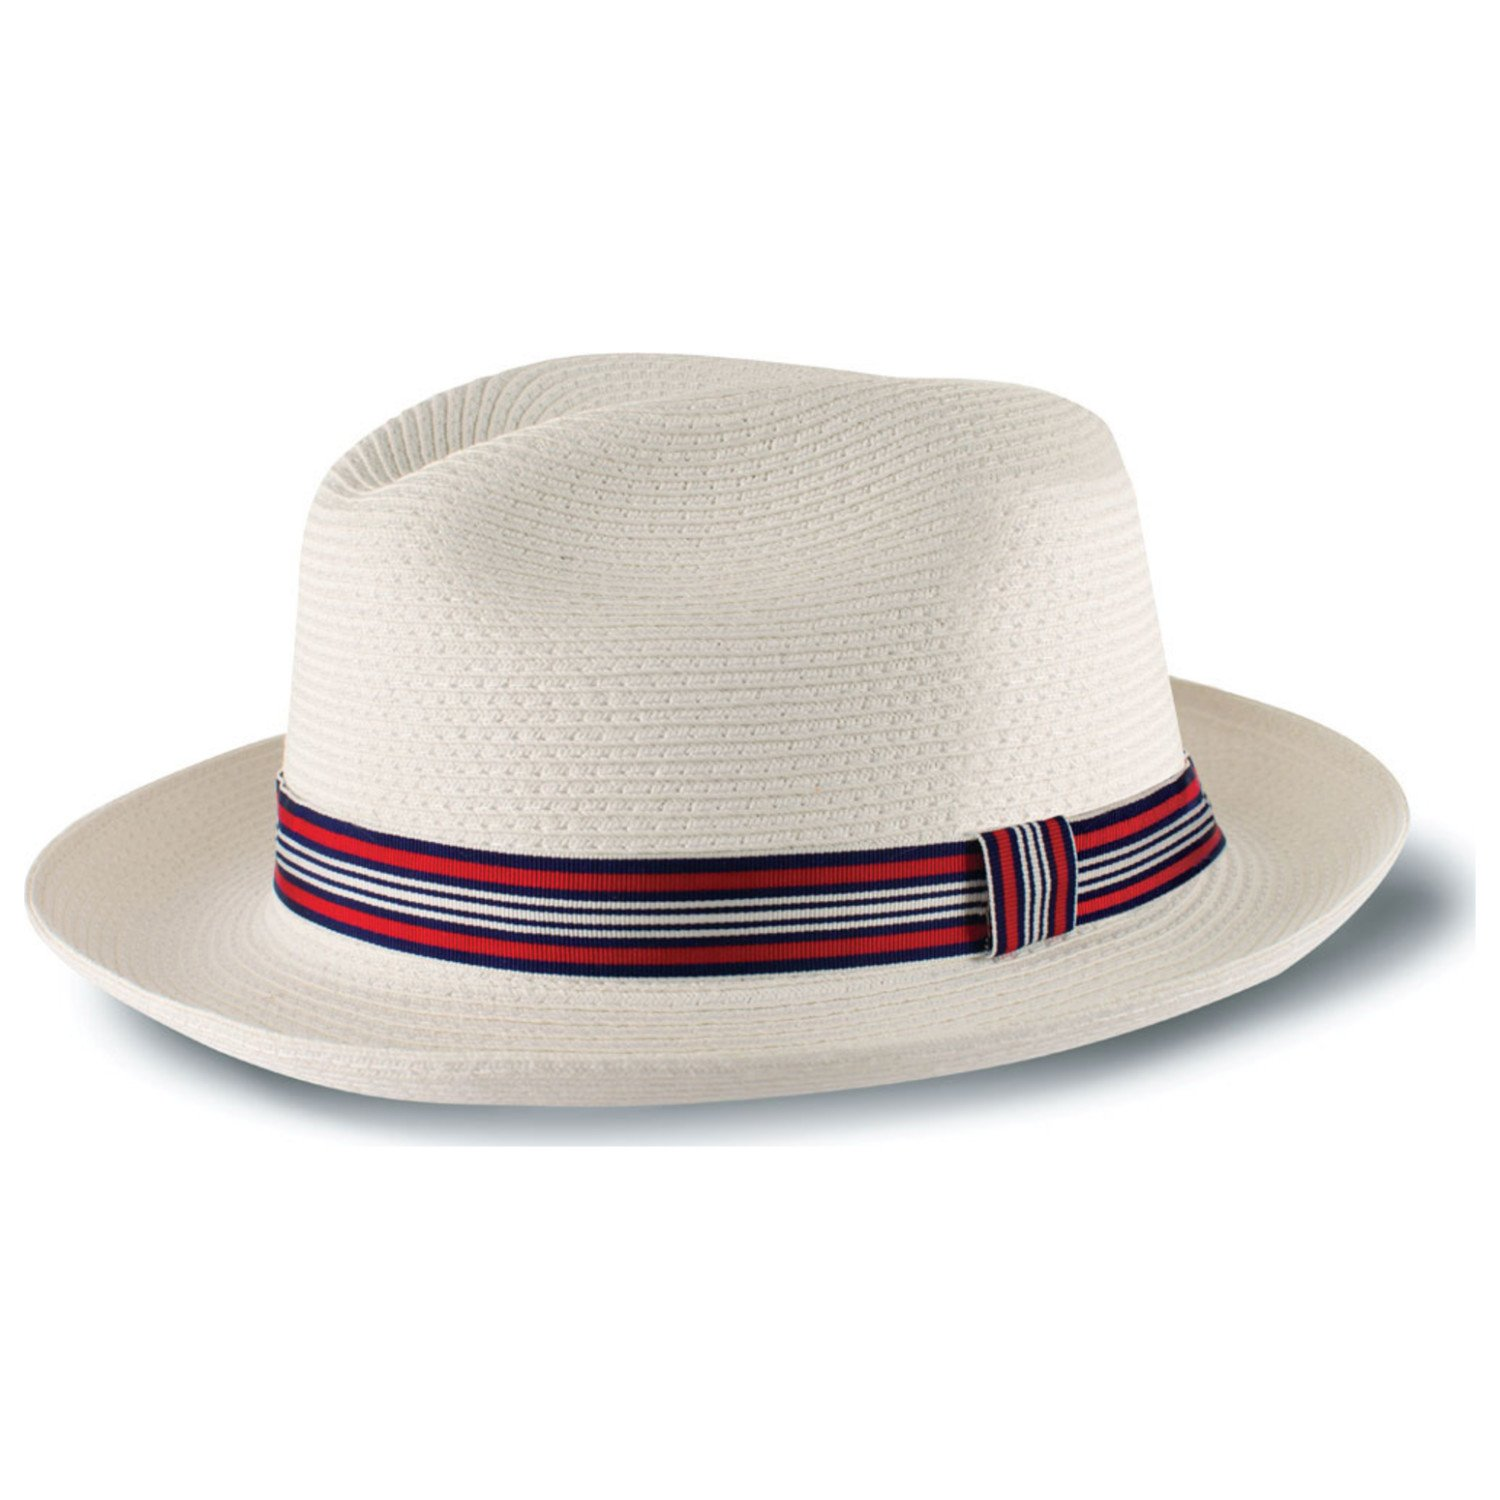 Tilley Endurables TOYO Fedora - White - XL